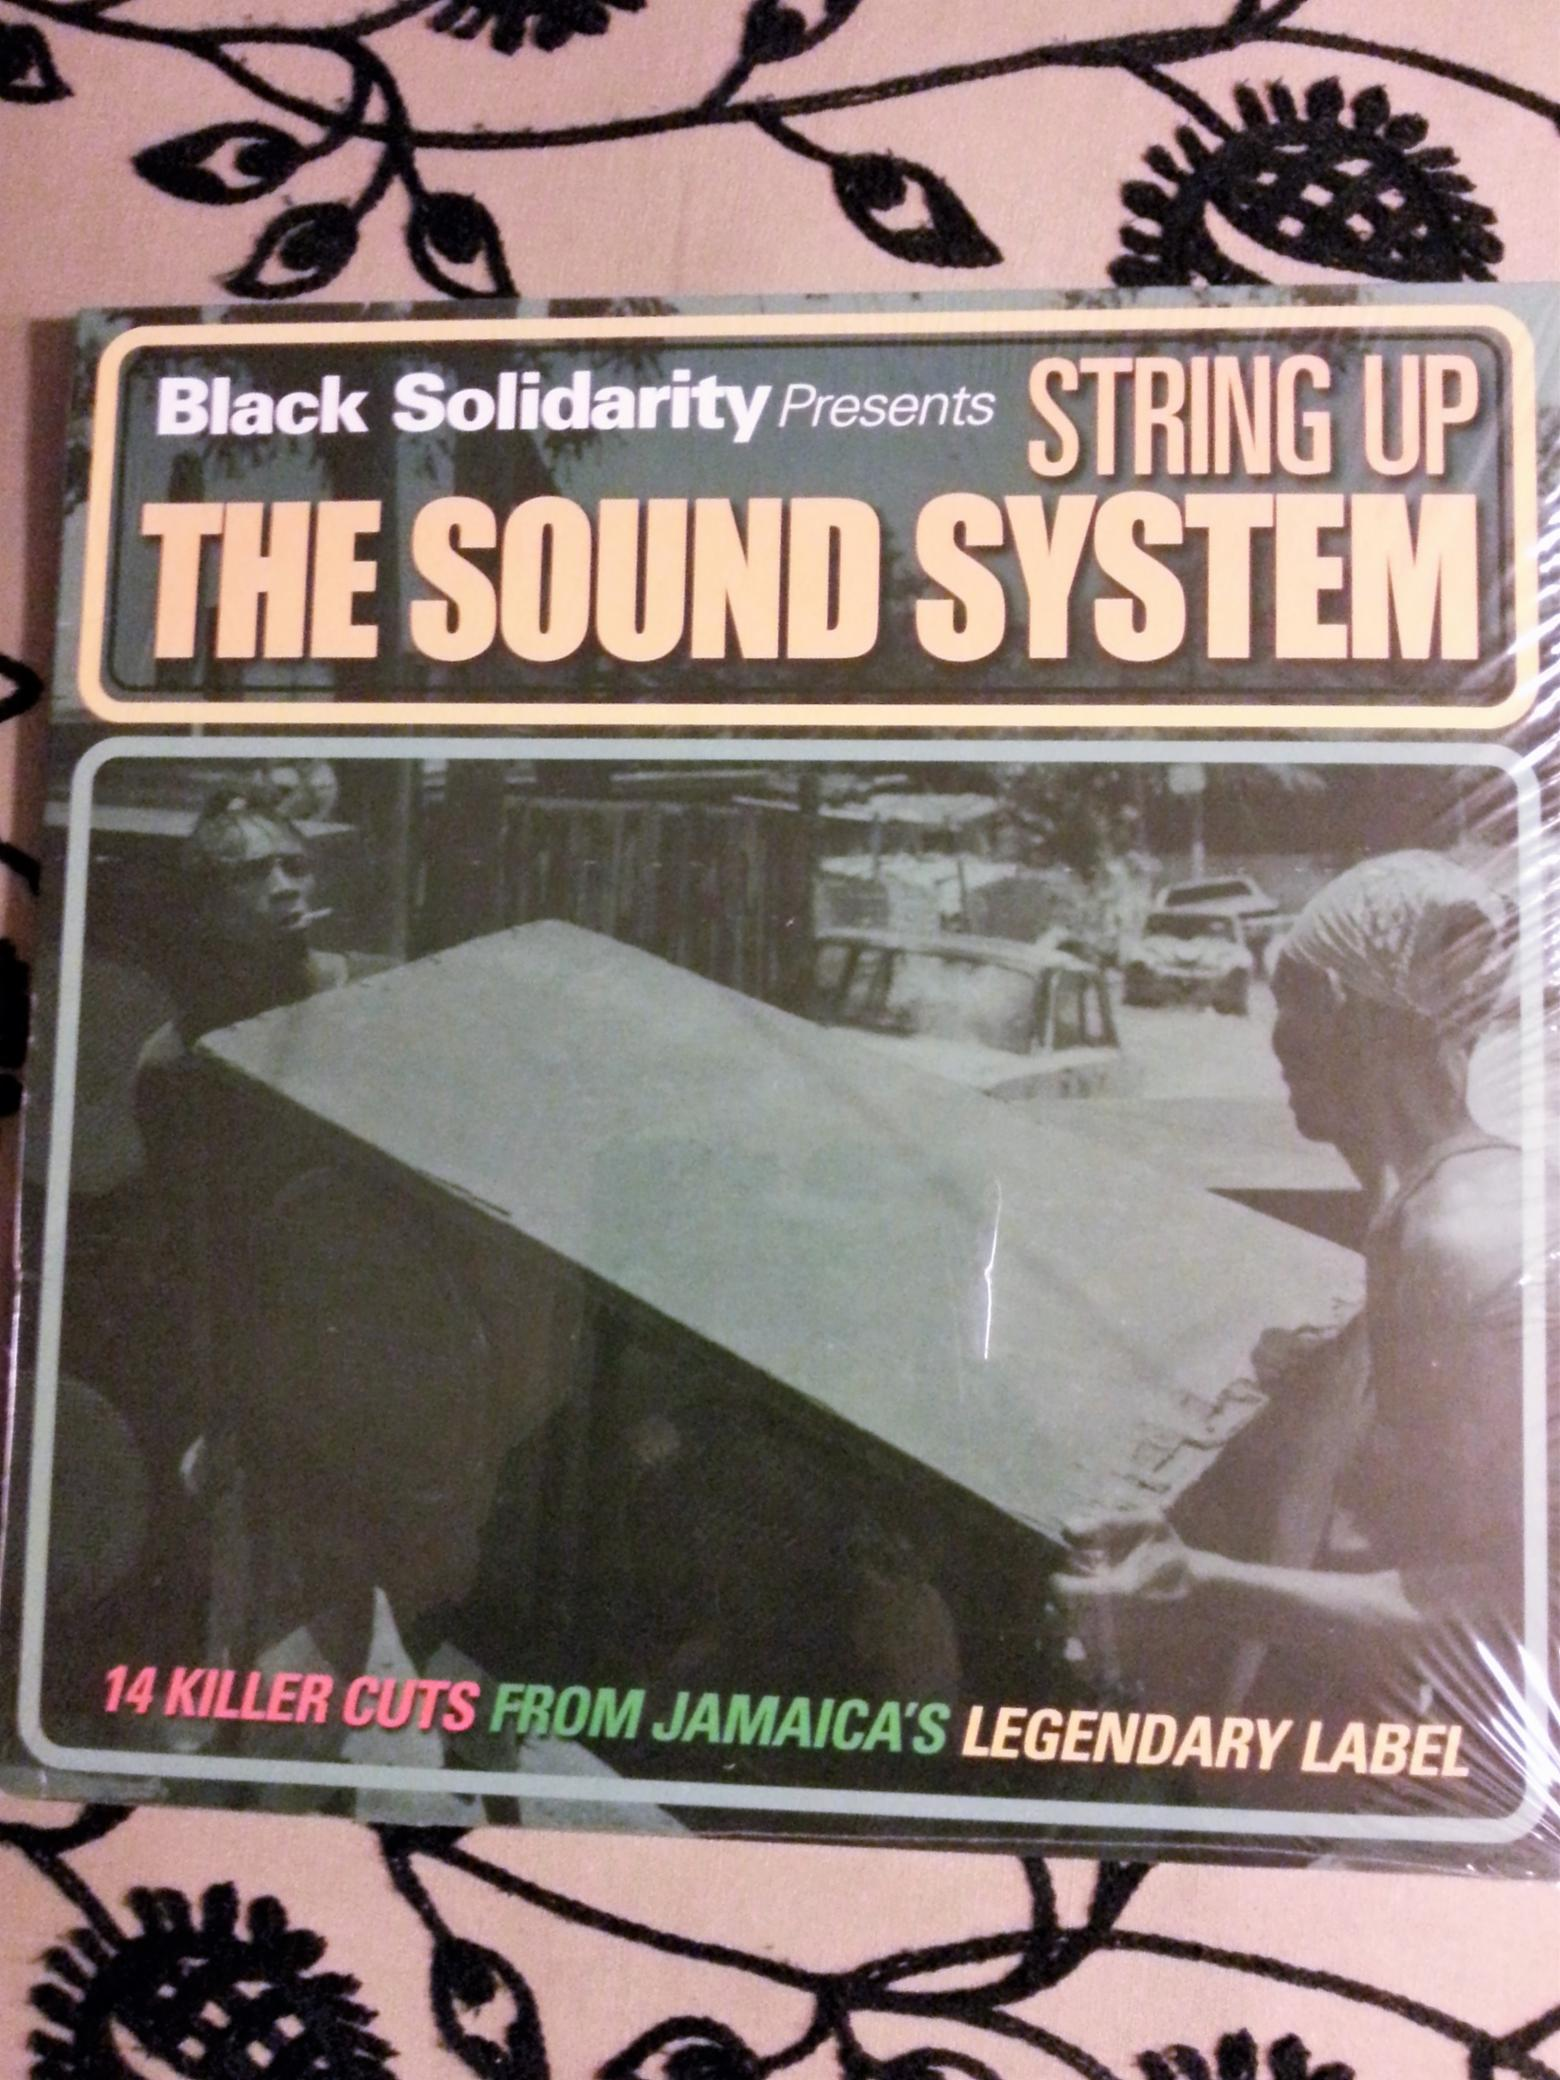 THE SOUND SYSTEM